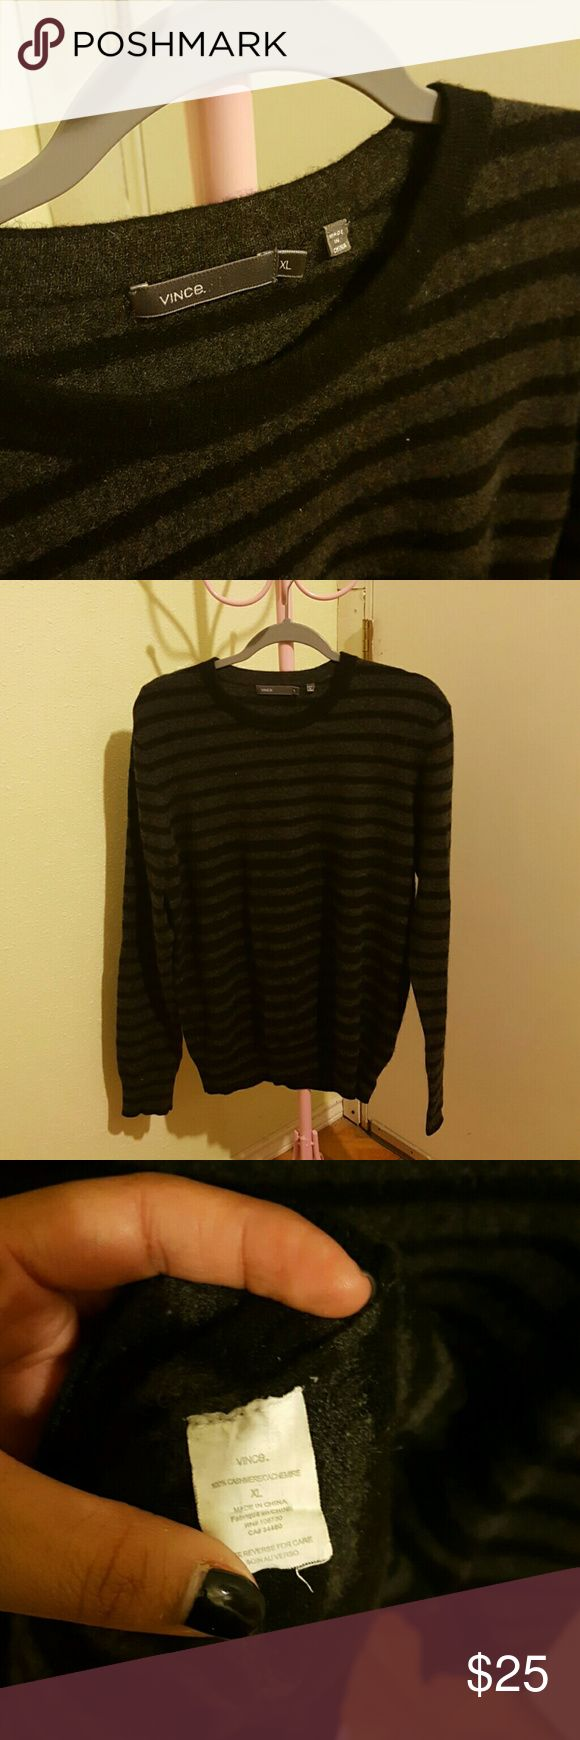 Mens Cashmere Sweater Black and gray stripped sweater. 100% cashmere. Vince Sweaters Crewneck